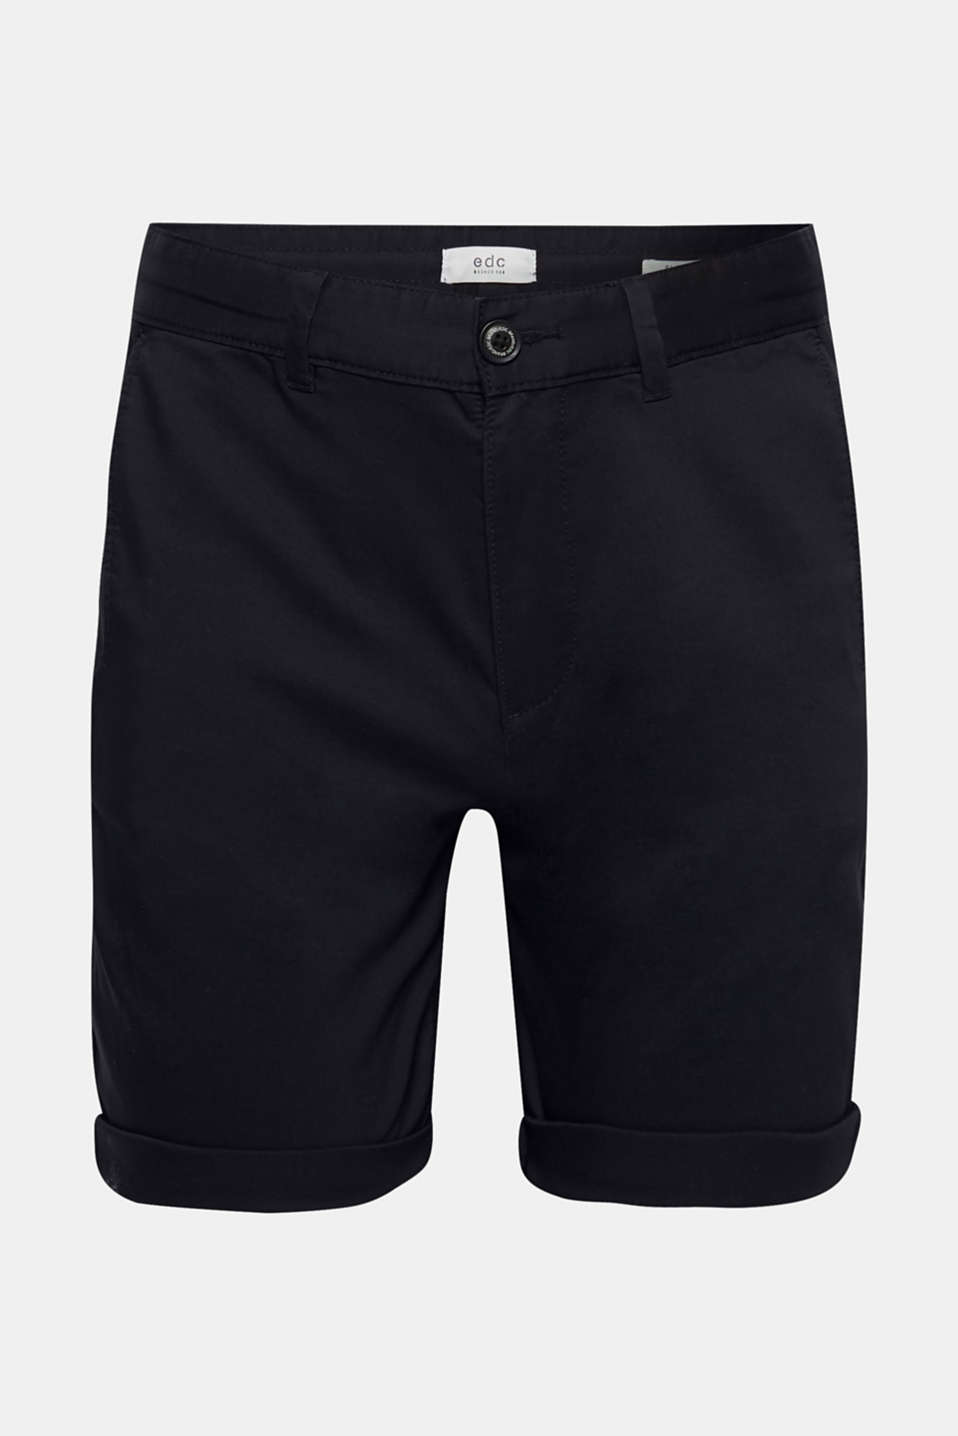 Shorts woven Slim fit, NAVY, detail image number 6